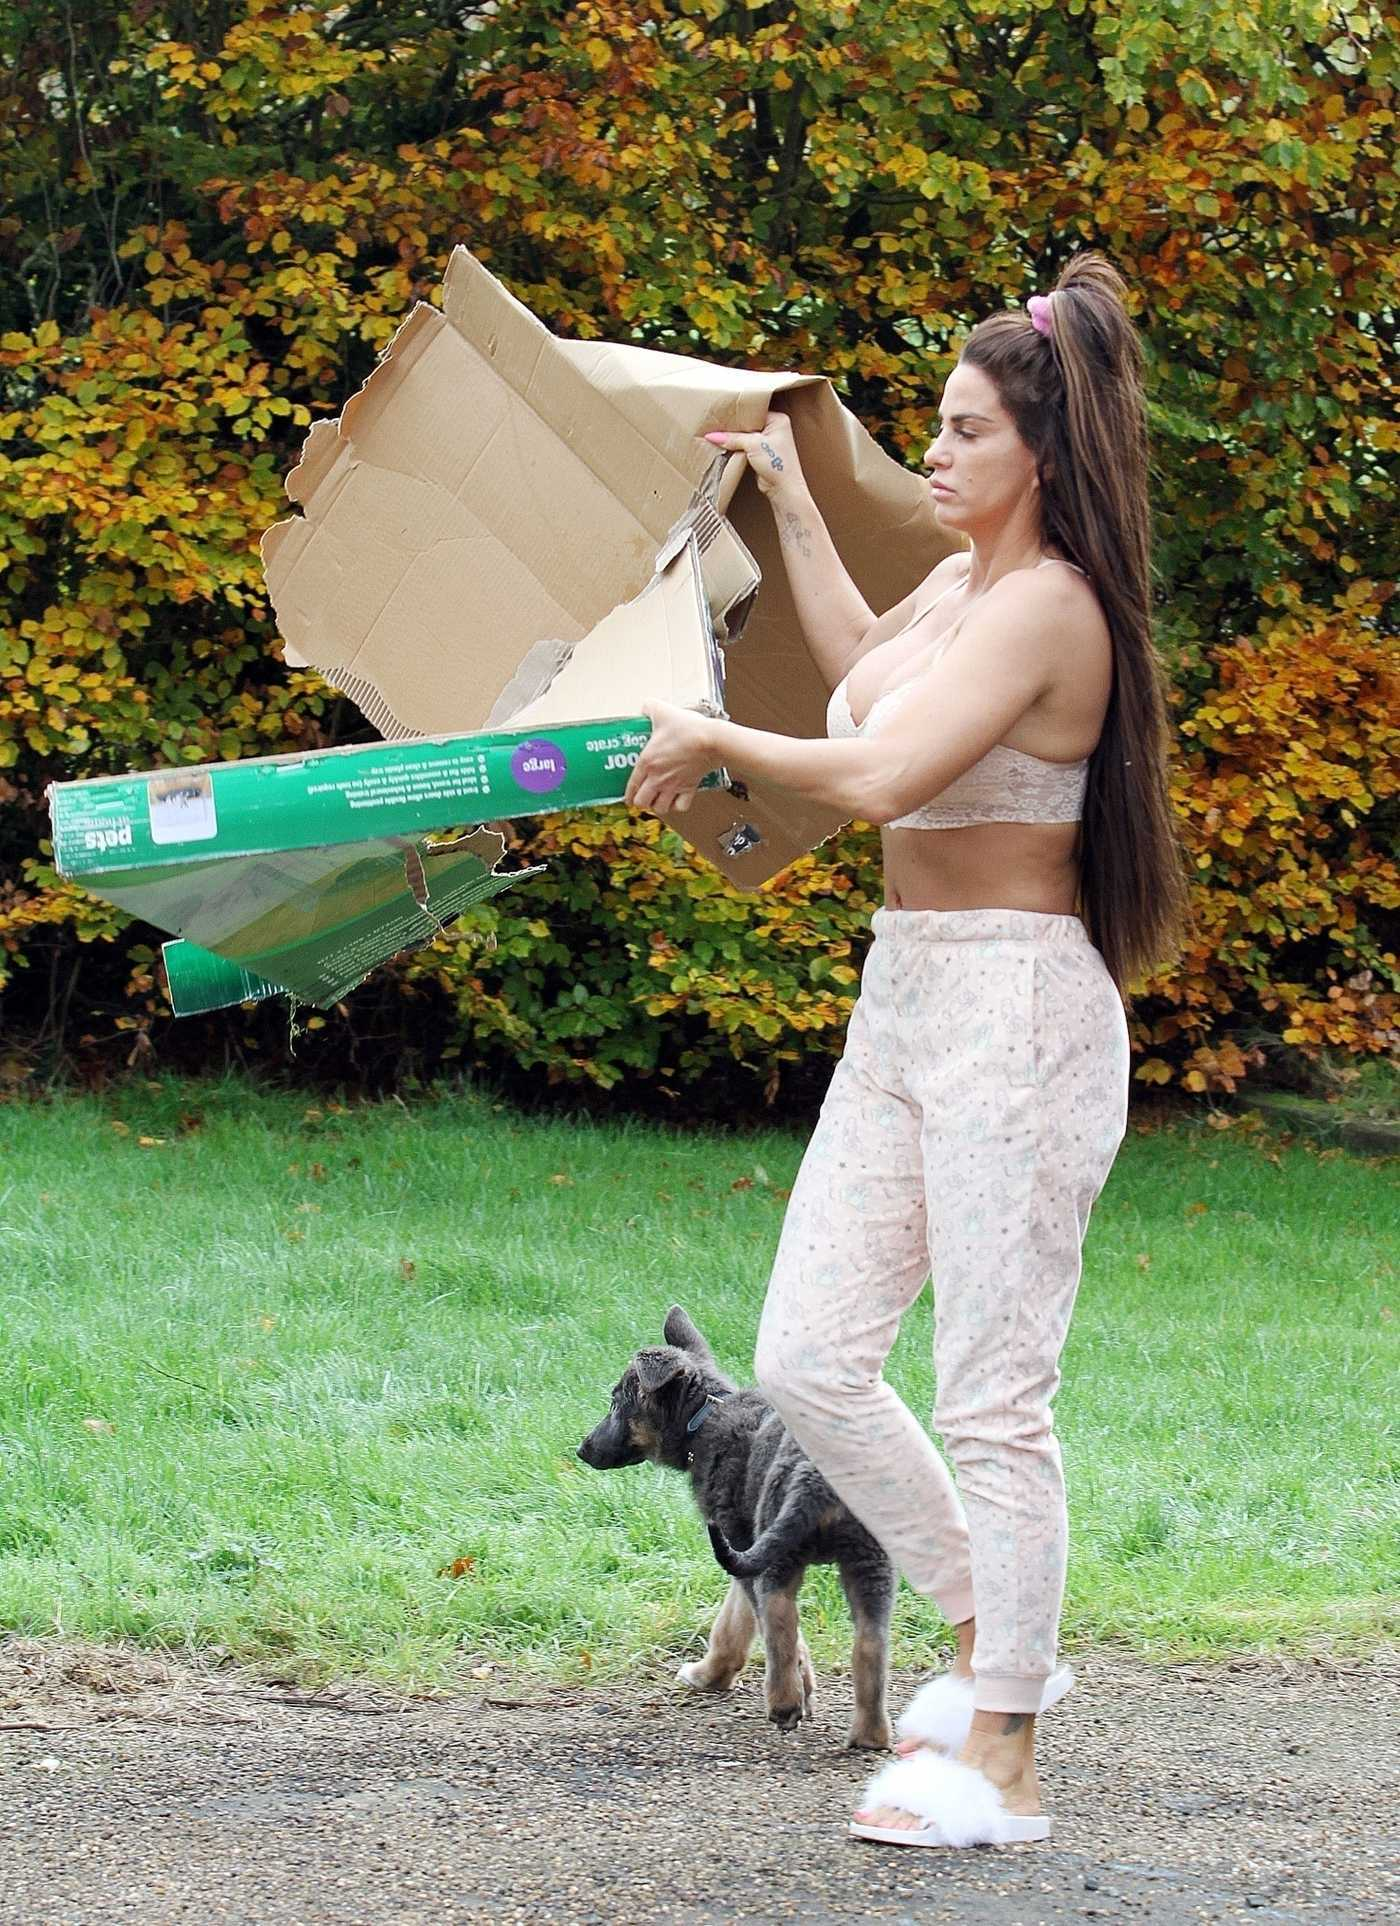 Katie Price Puts the Rubbish Away in Her Bedroom Joggers and Bra in London 11/11/2018